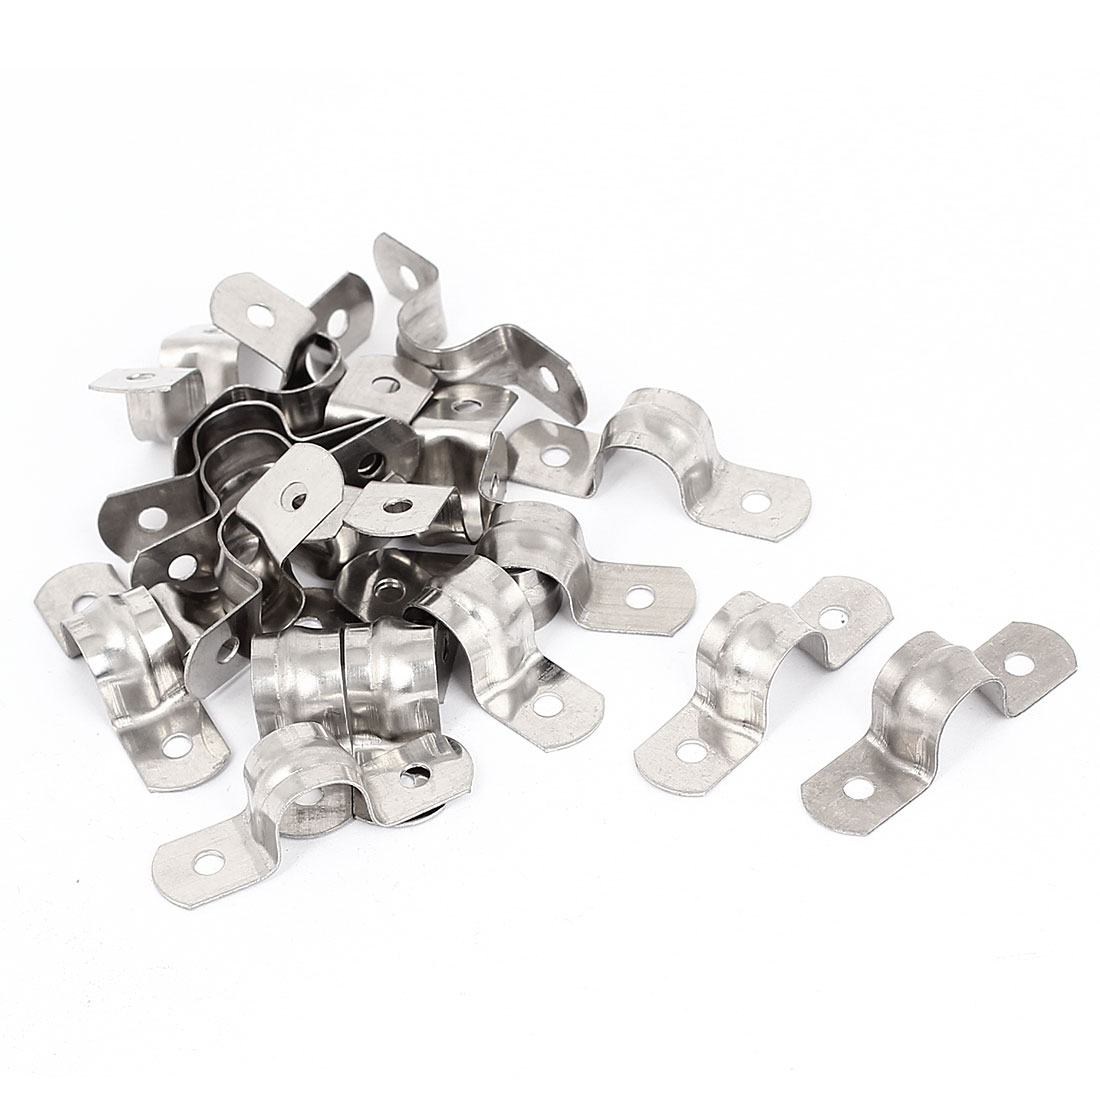 20pcs 2-Hole Metal Rigid Conduit Pipe Straps Clips Clamps for 12mm Dia Tube